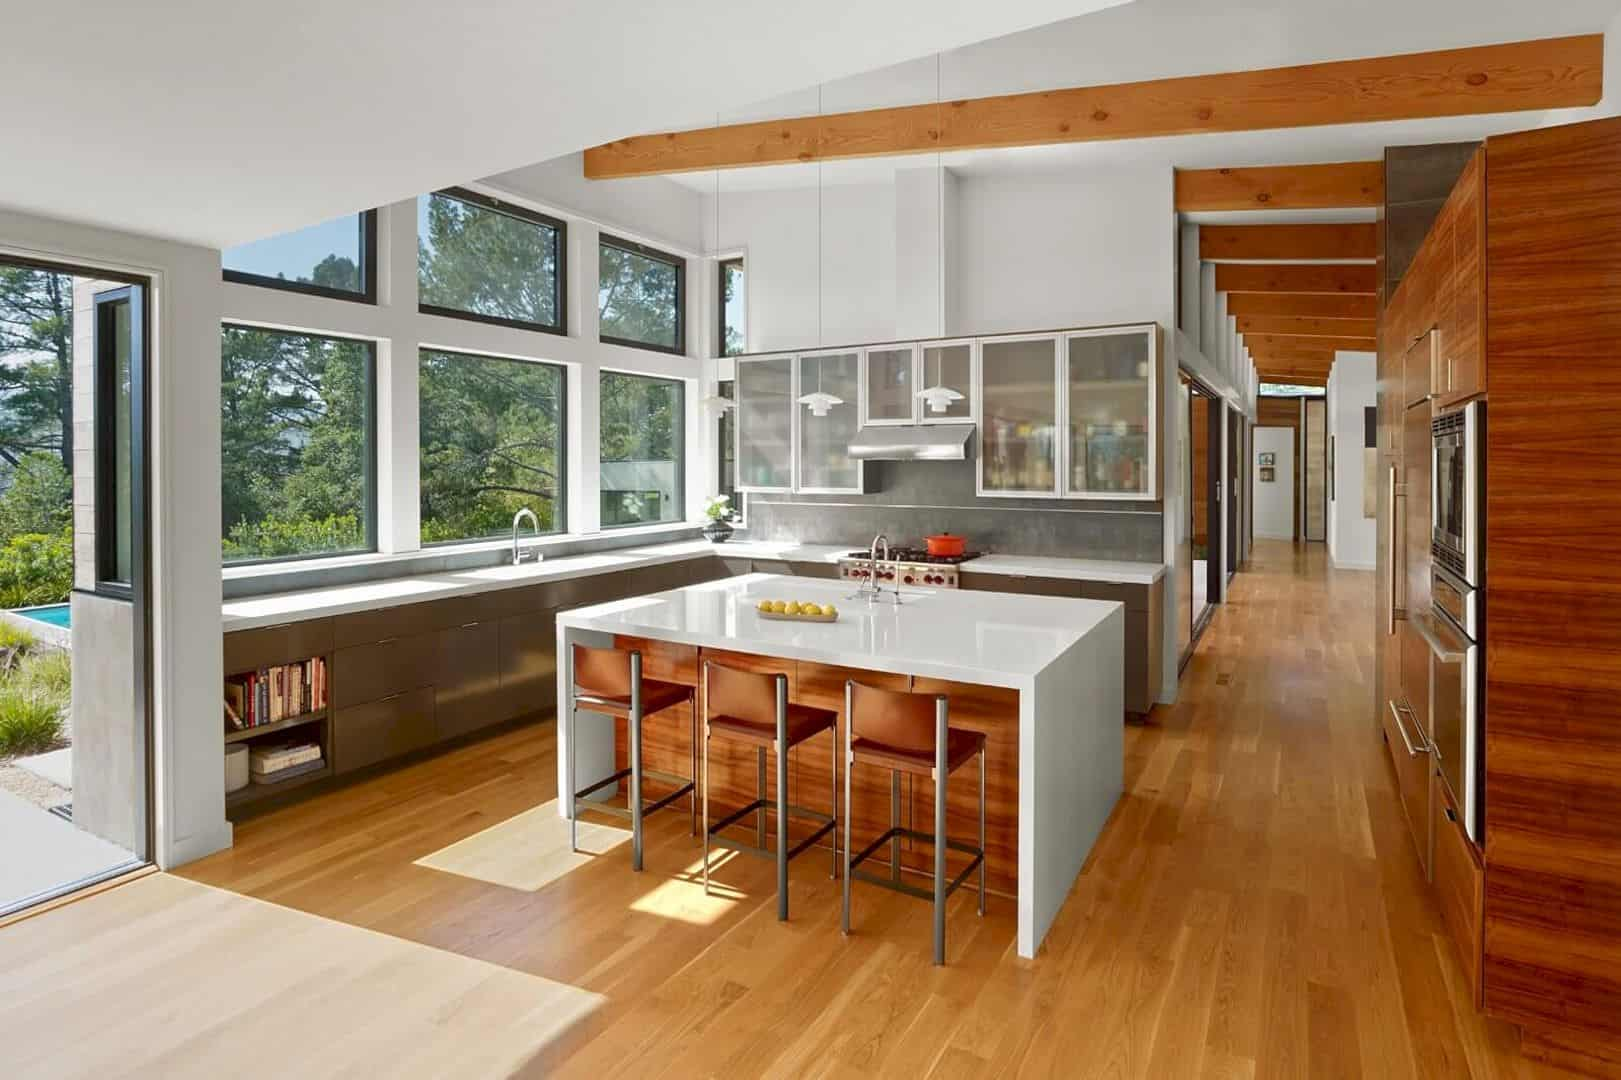 Golden Oak Residence A Light Filled House That Takes Advantage Of Its Bucolic Site 2